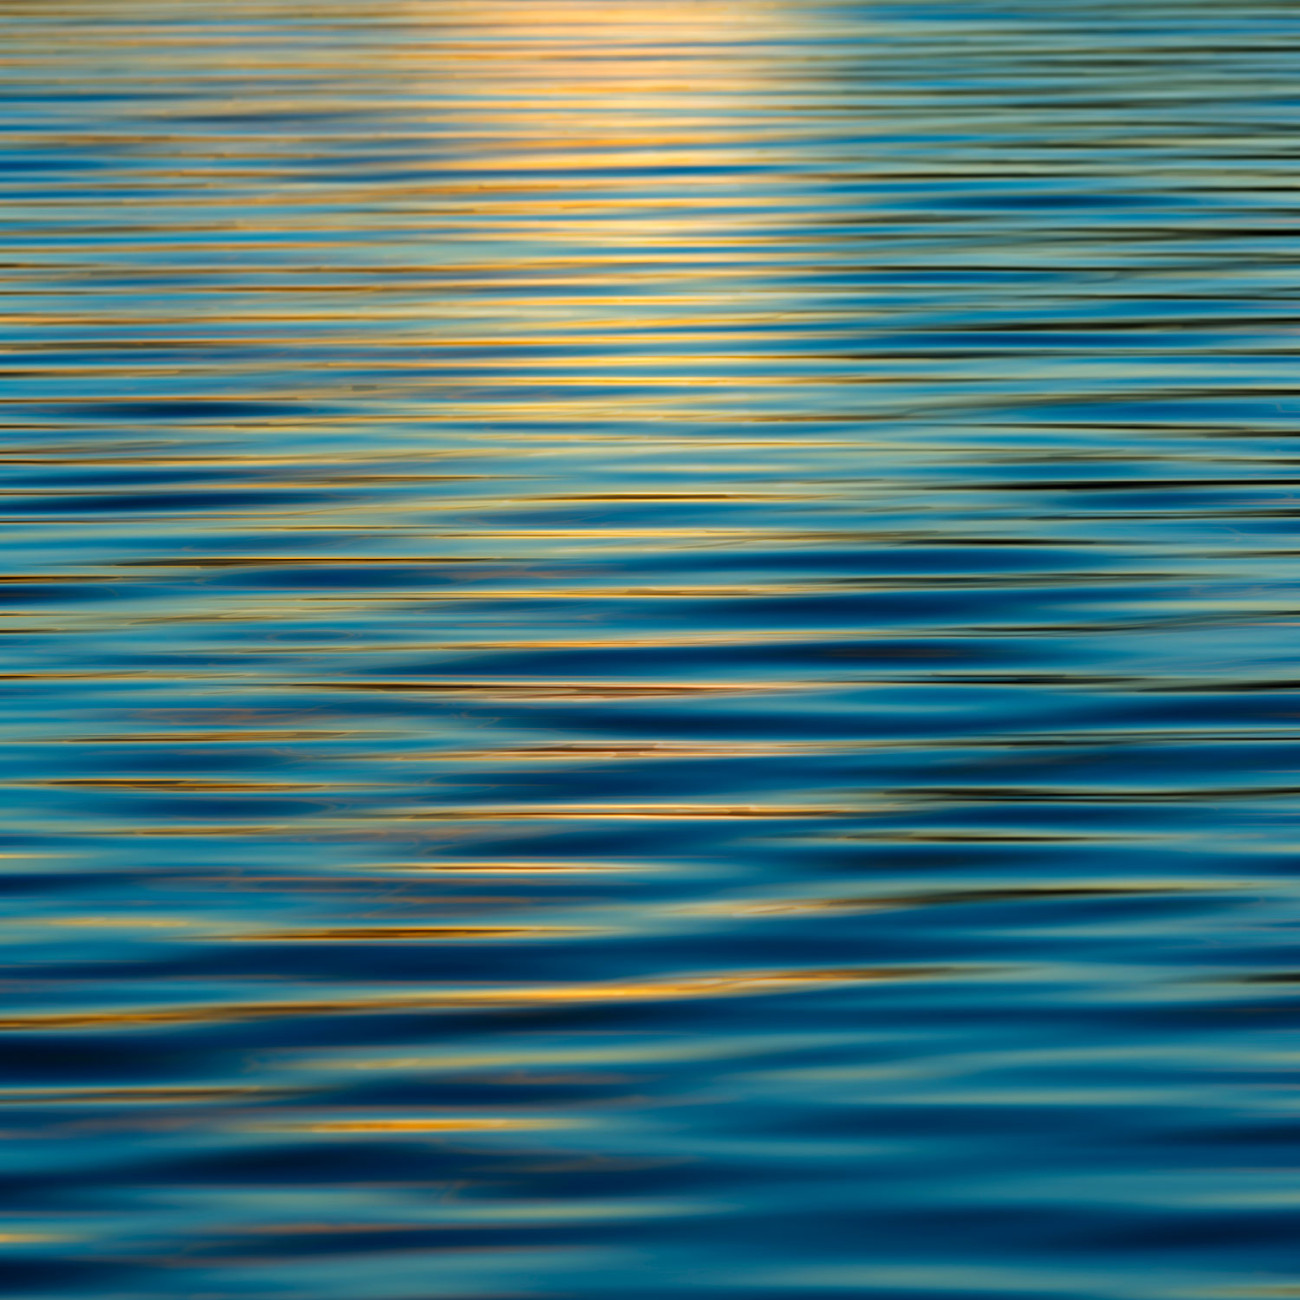 Sunset reflection on Walden Pond, 2013